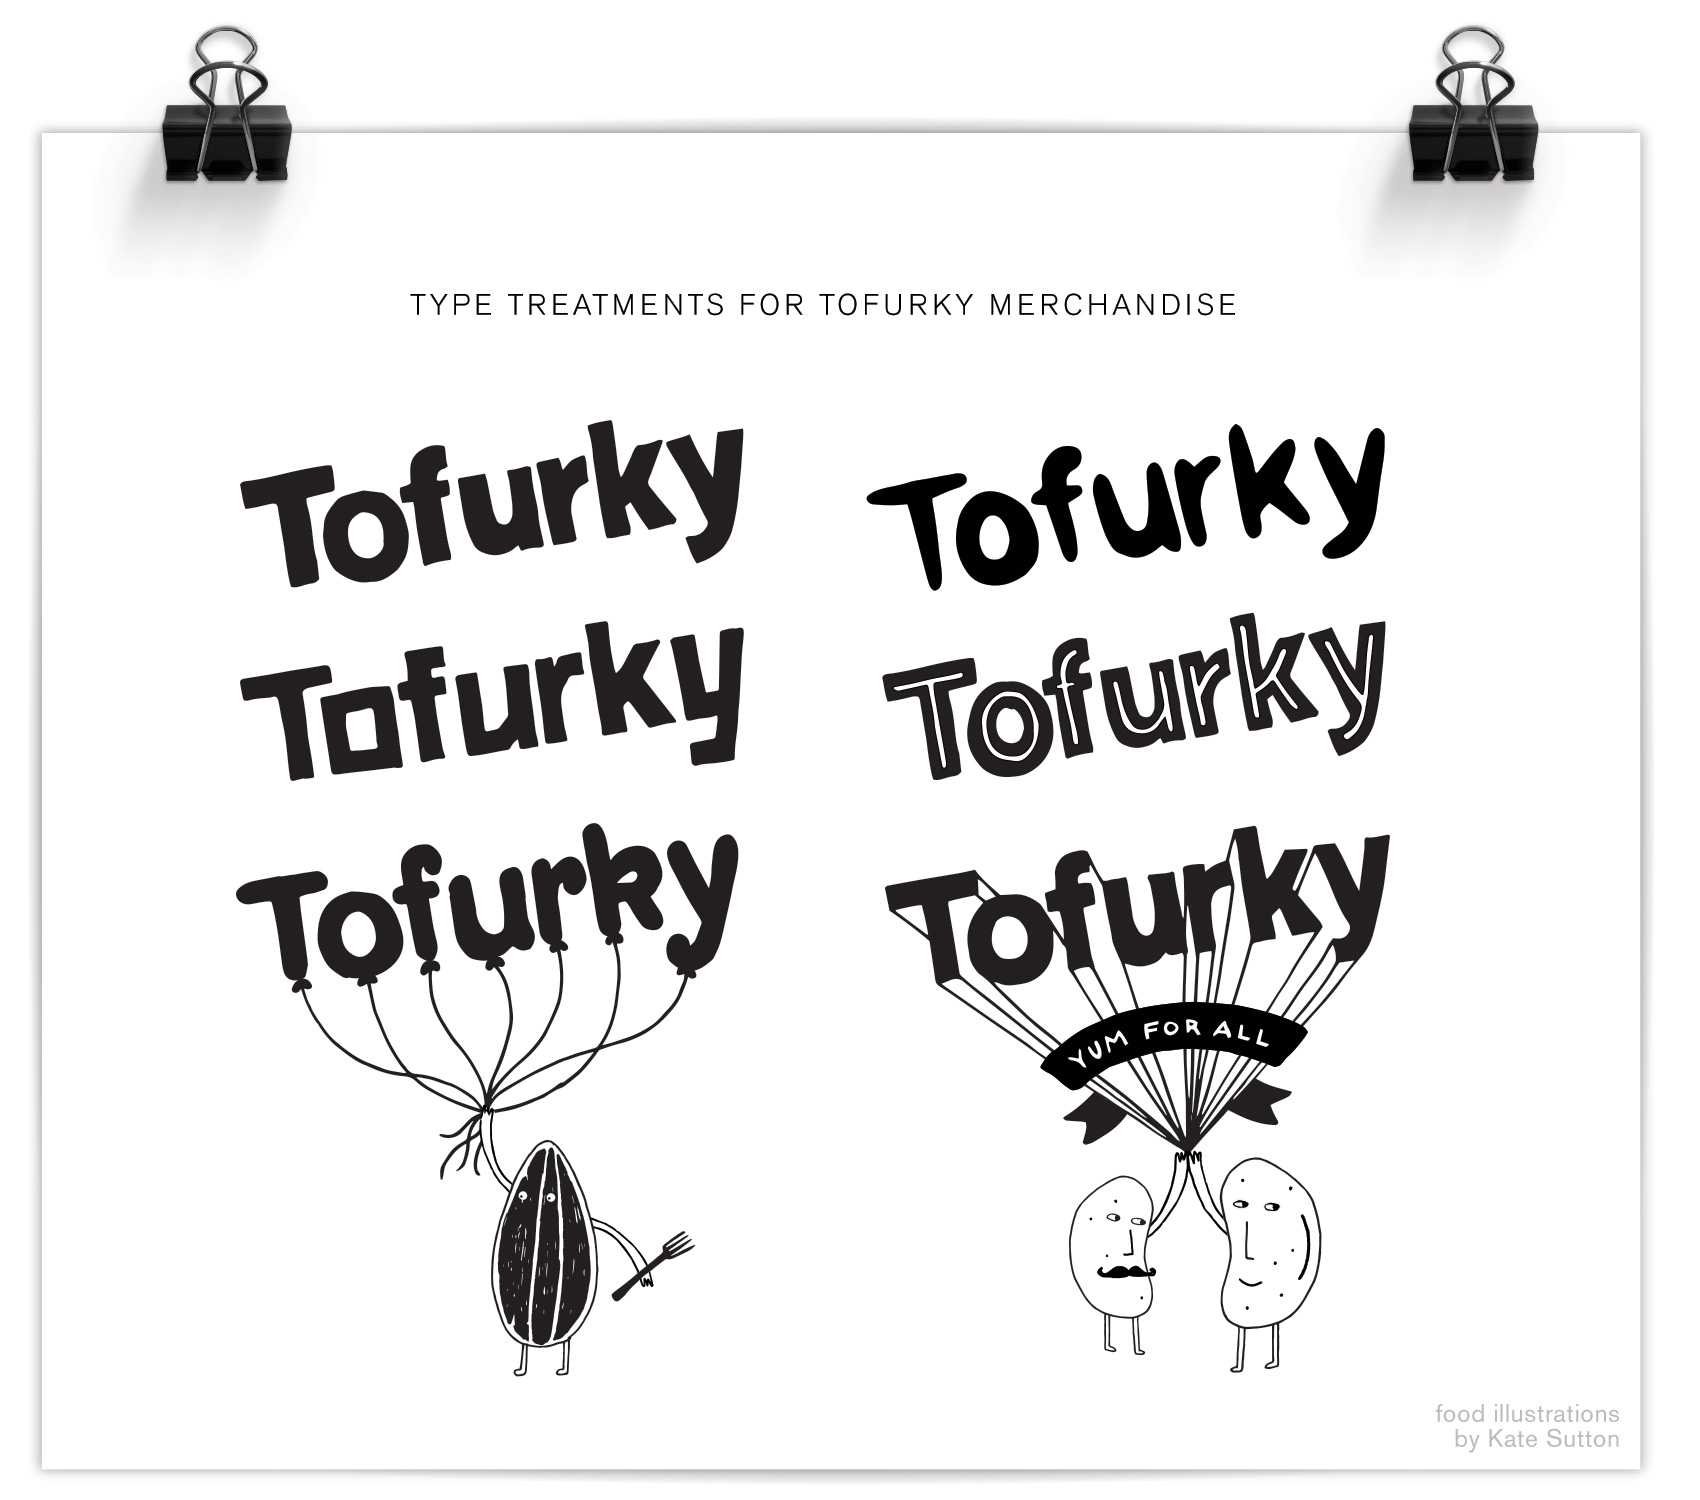 Tofurky-merchandise-type-treatments-2